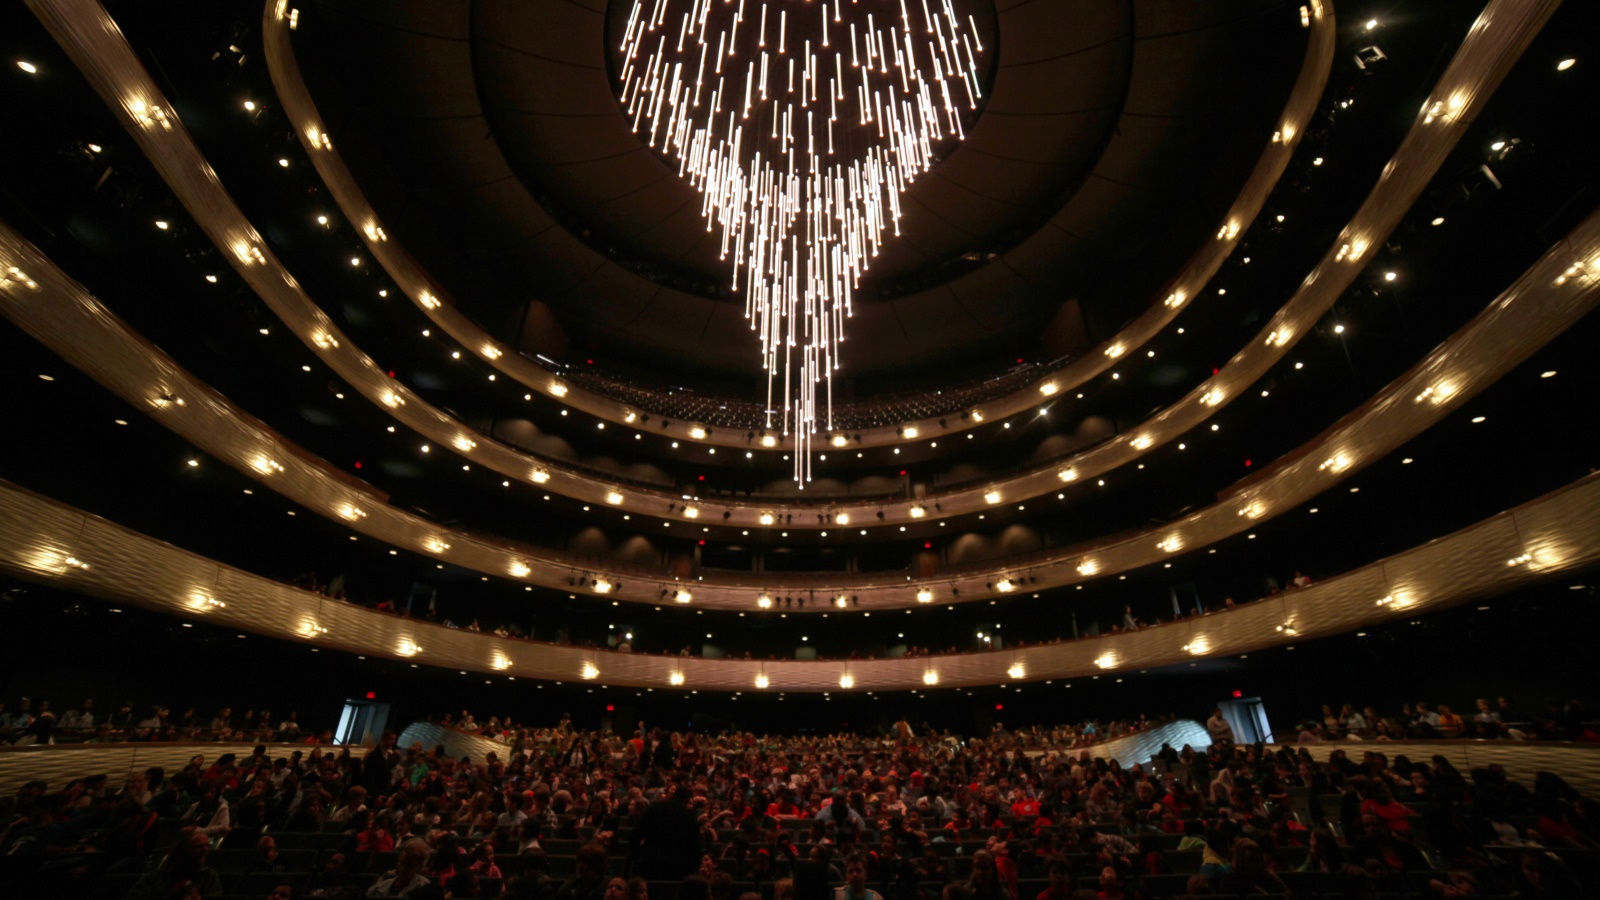 Things to do in Dallas - Winspear Opera House